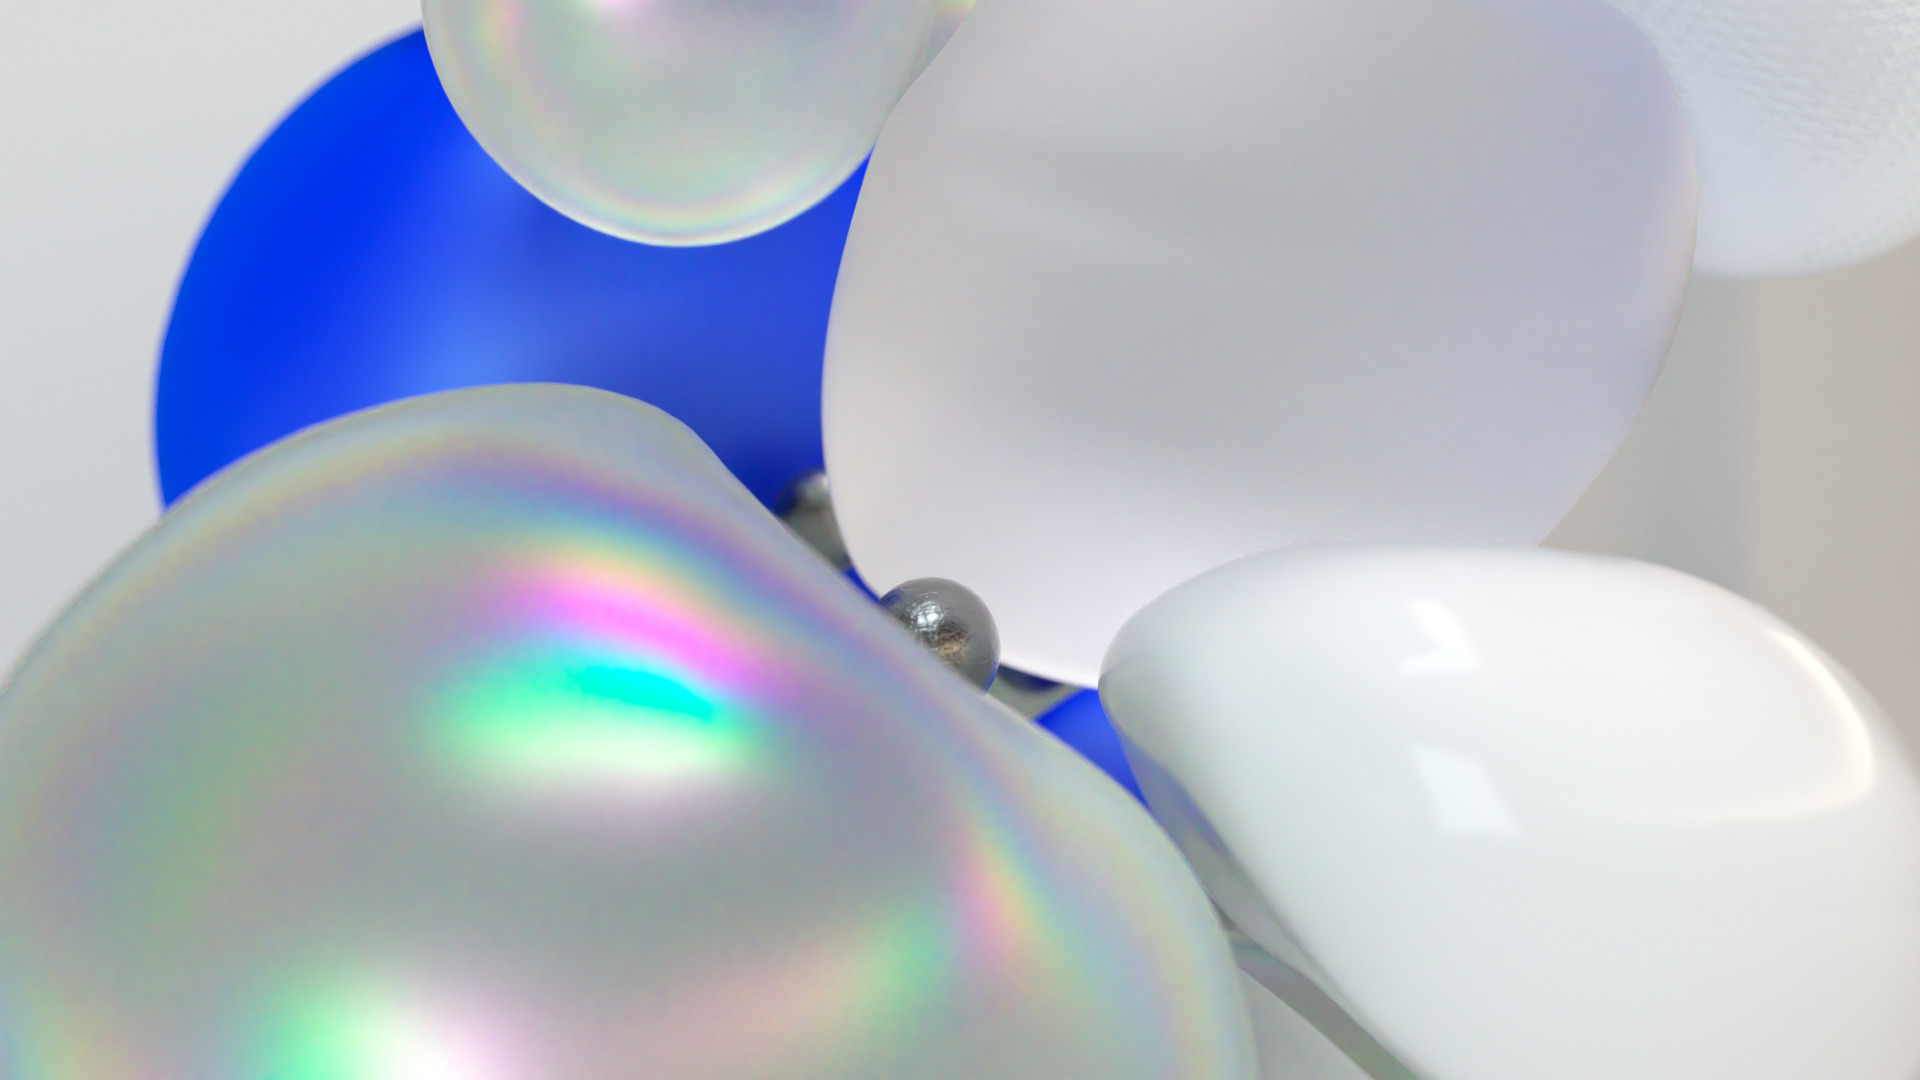 Blue, reflective, white Bubbles and Balls